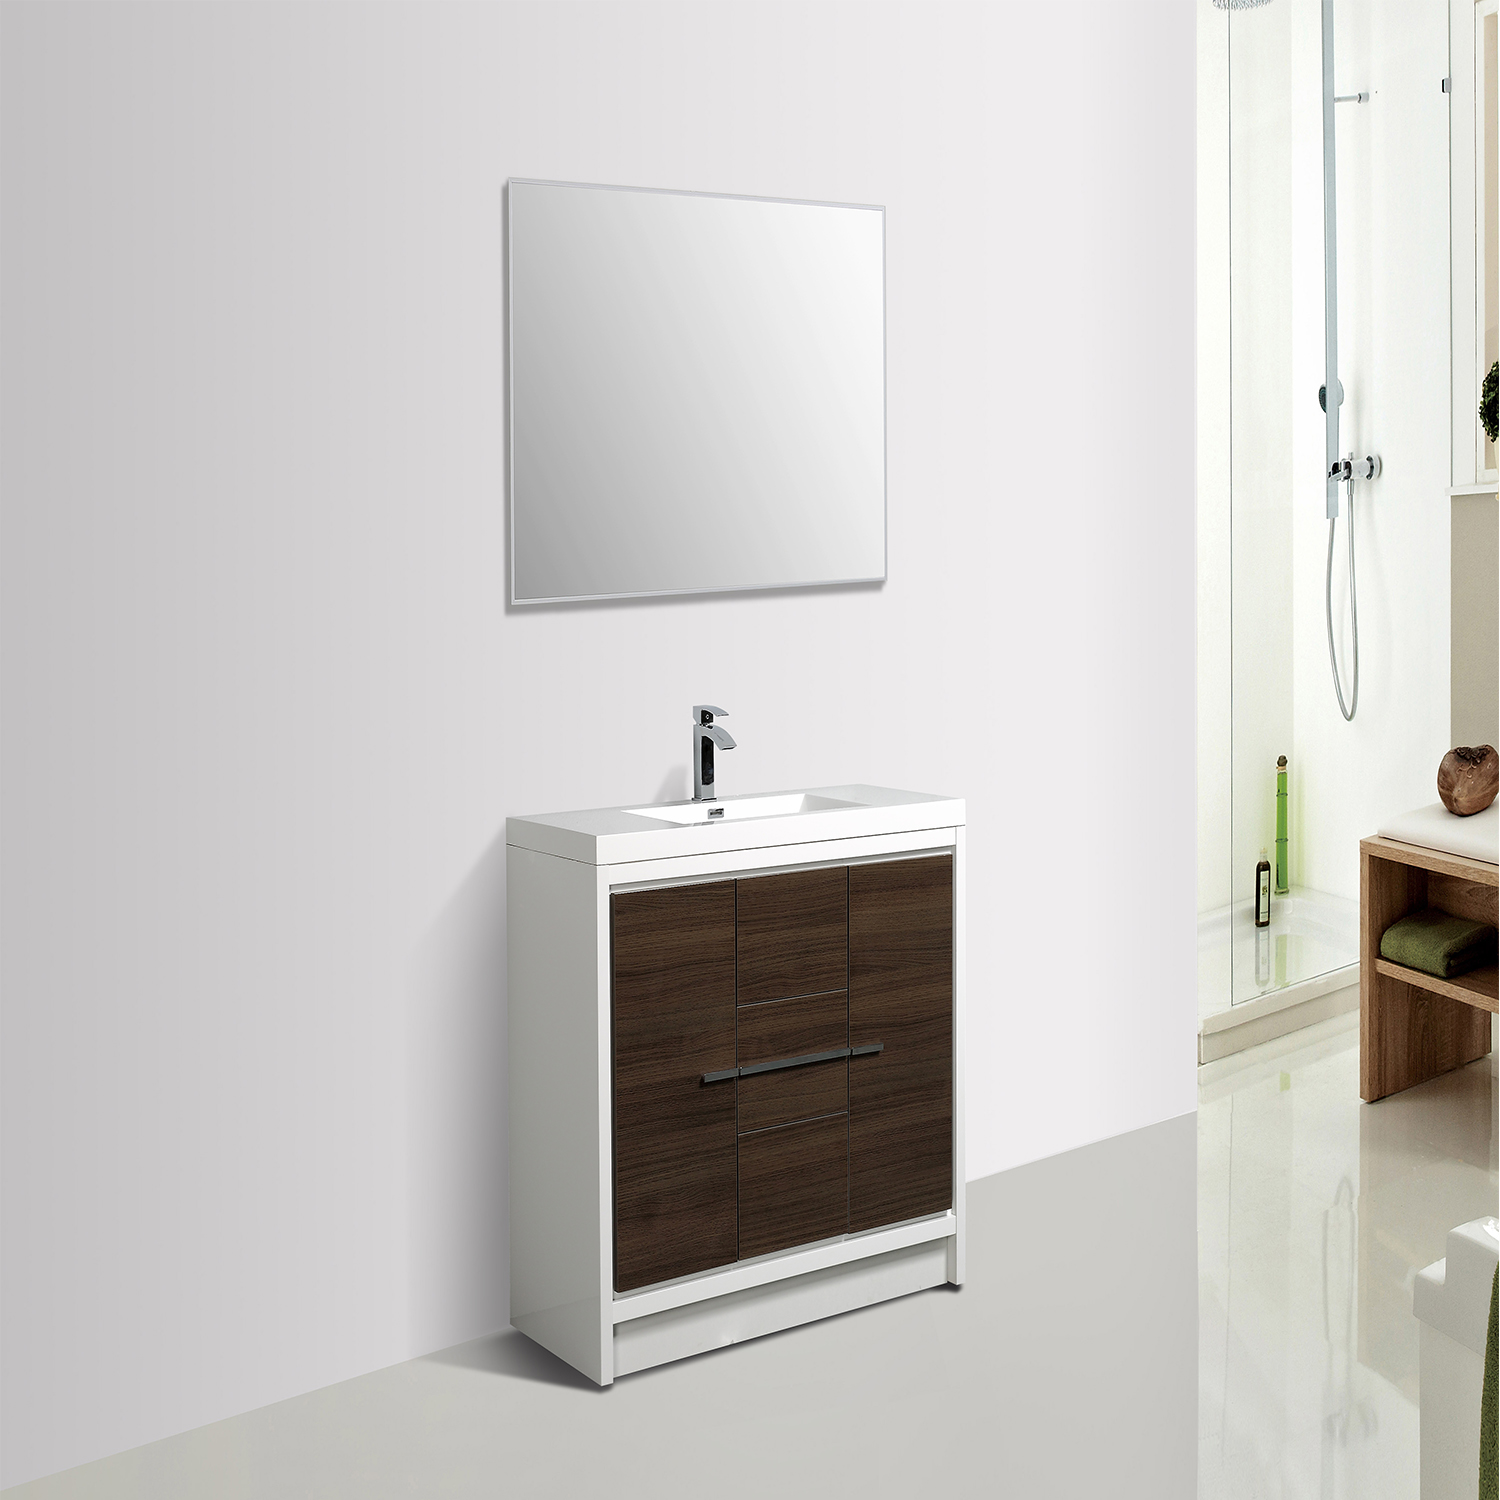 EVVN765 36GOK WH A Main - Eviva Grace 36 in. Gray Oak and White Bathroom Vanity with White Integrated Acrylic Countertop